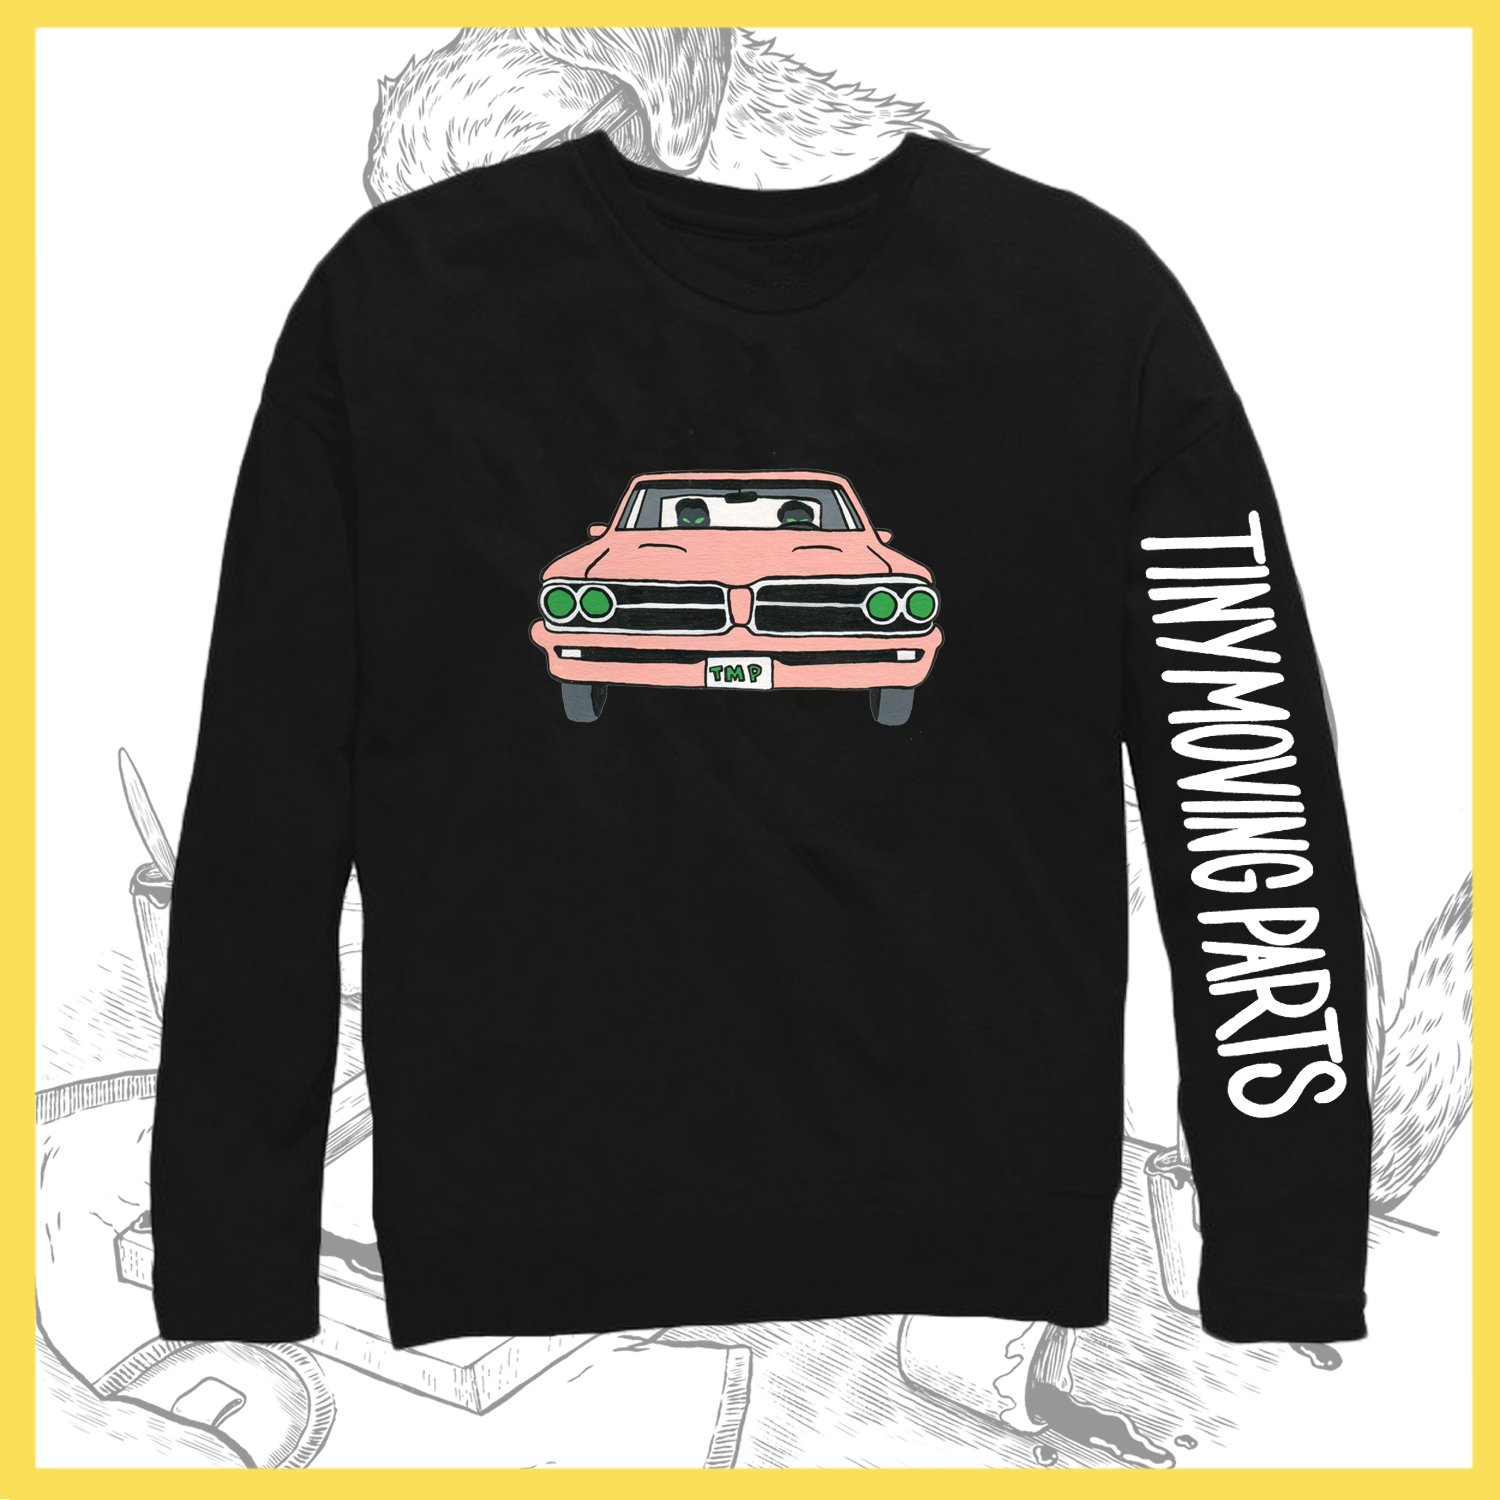 Tiny Moving Parts Car Longsleeve Availability In Stock